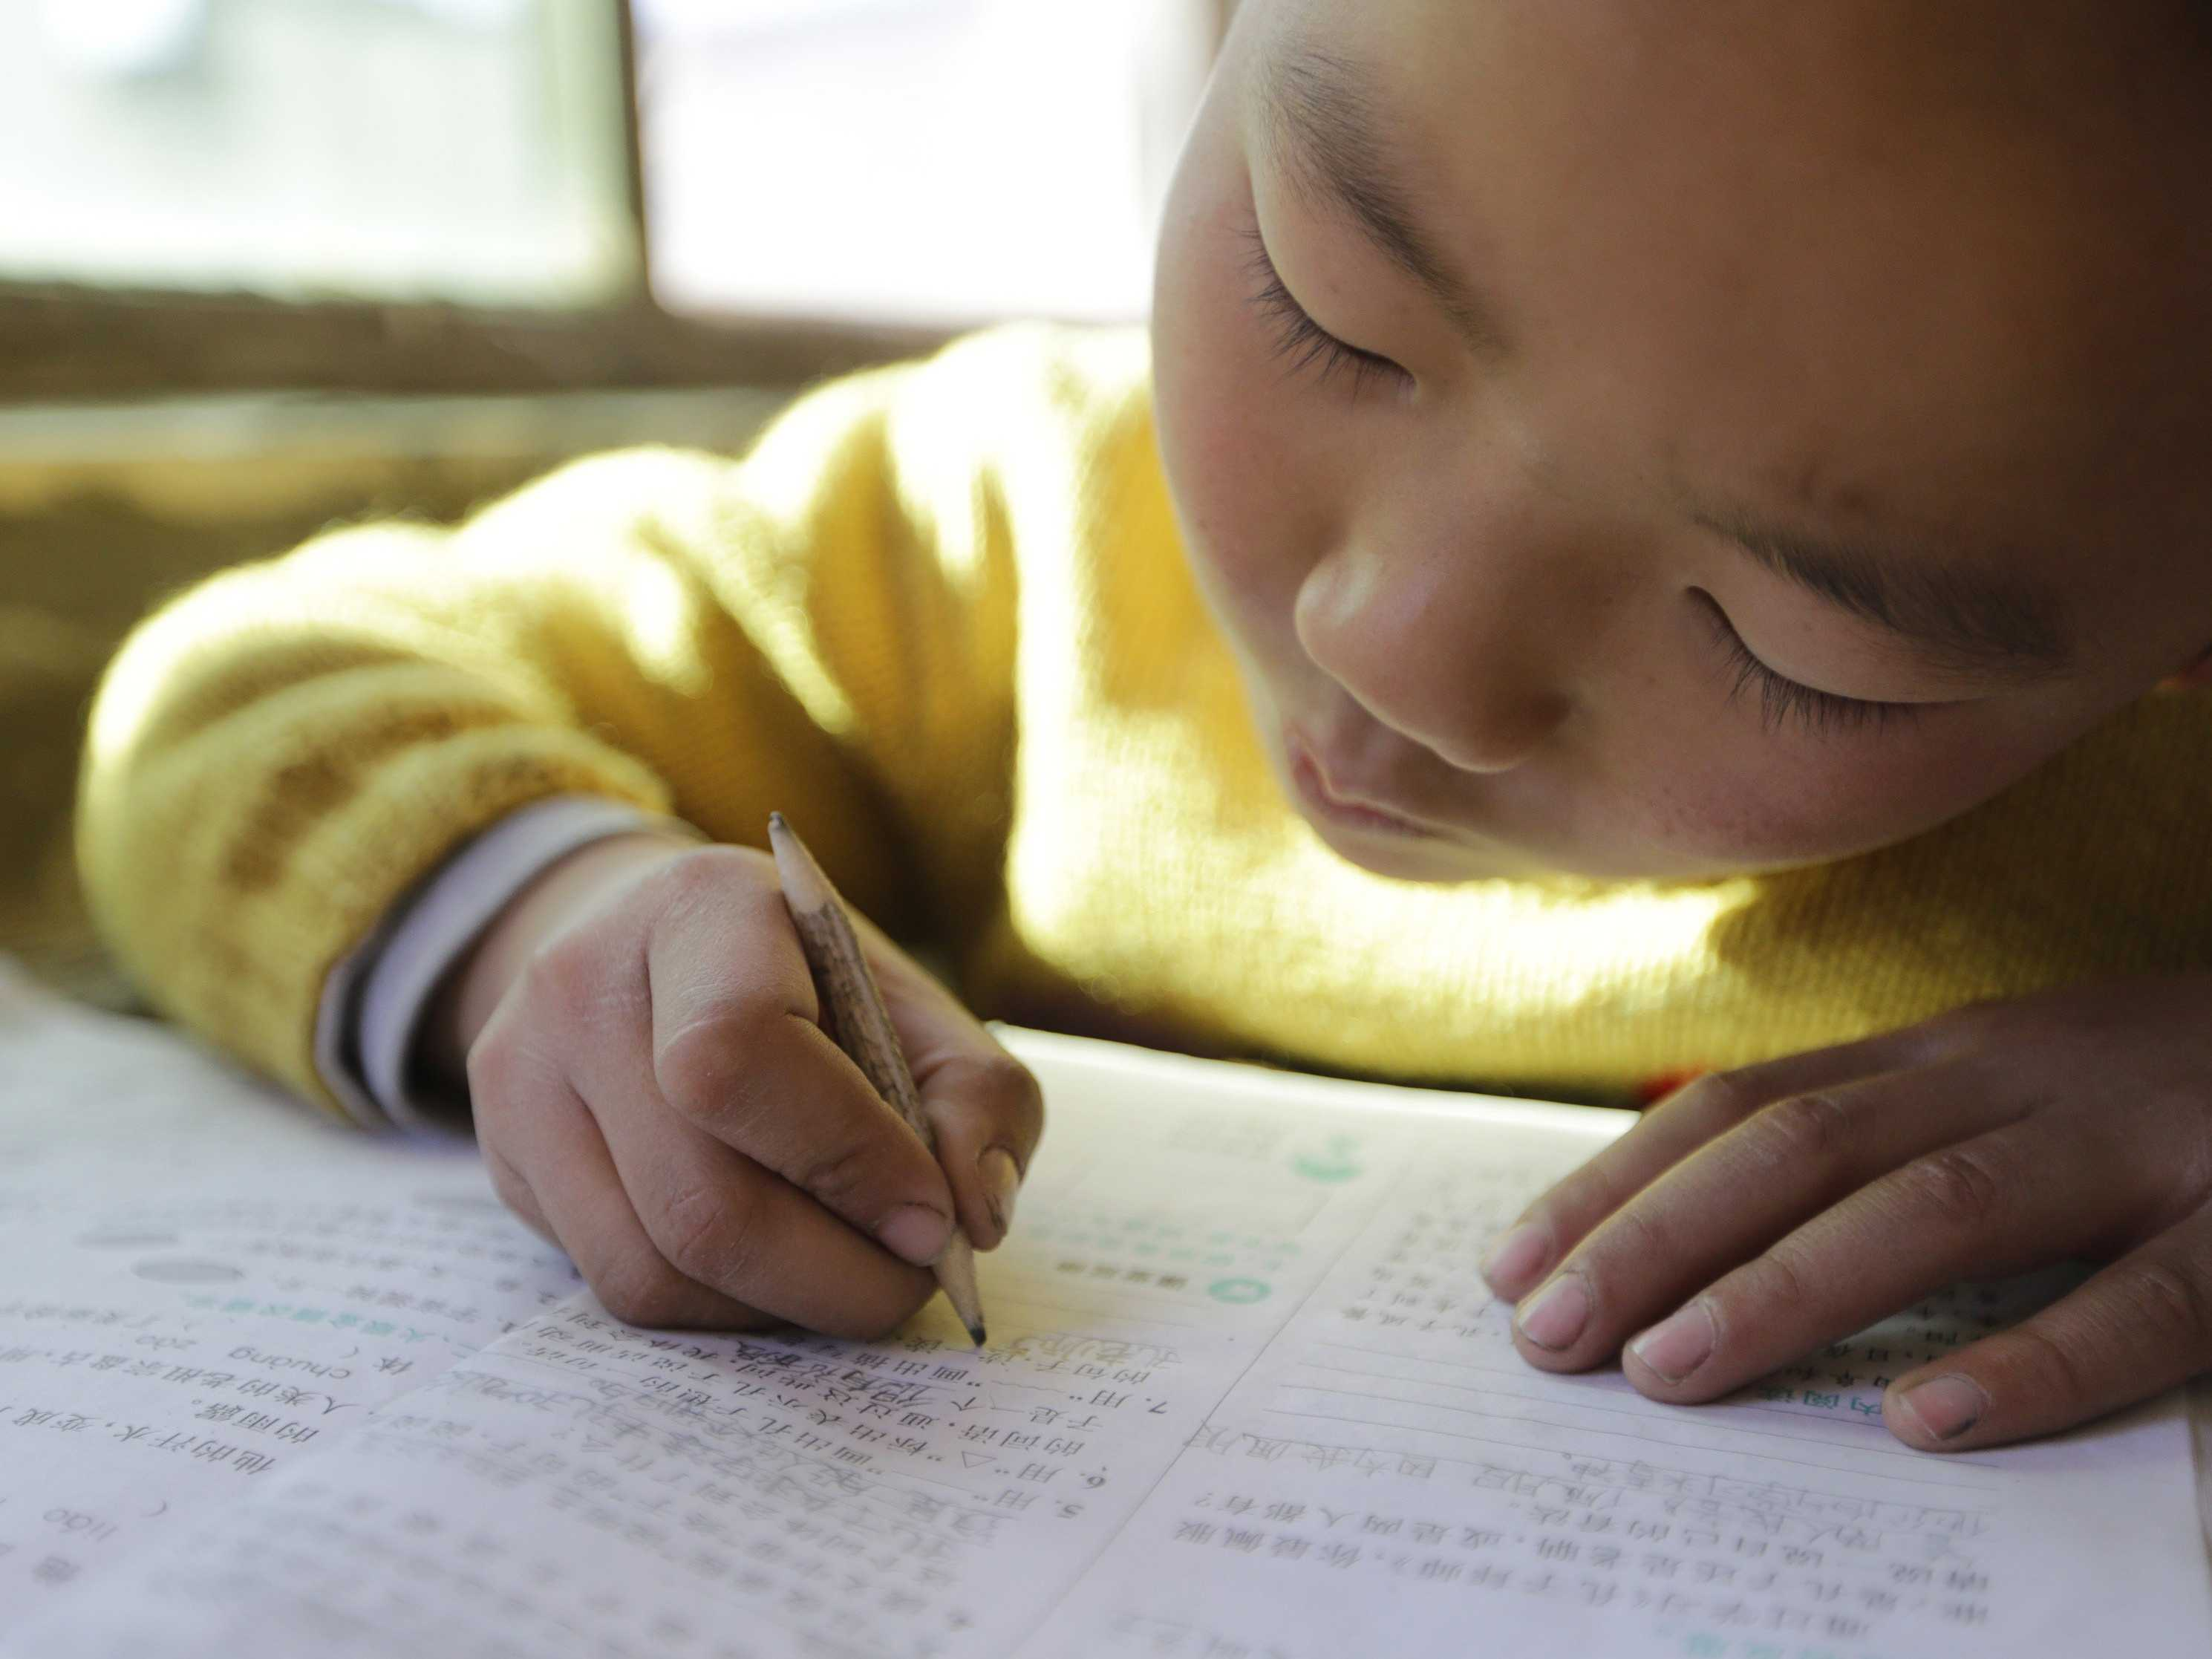 china-official-suggests-biting-pencils-not-nearby-chemical-plant--to-blame-for-child-lead-poisoning